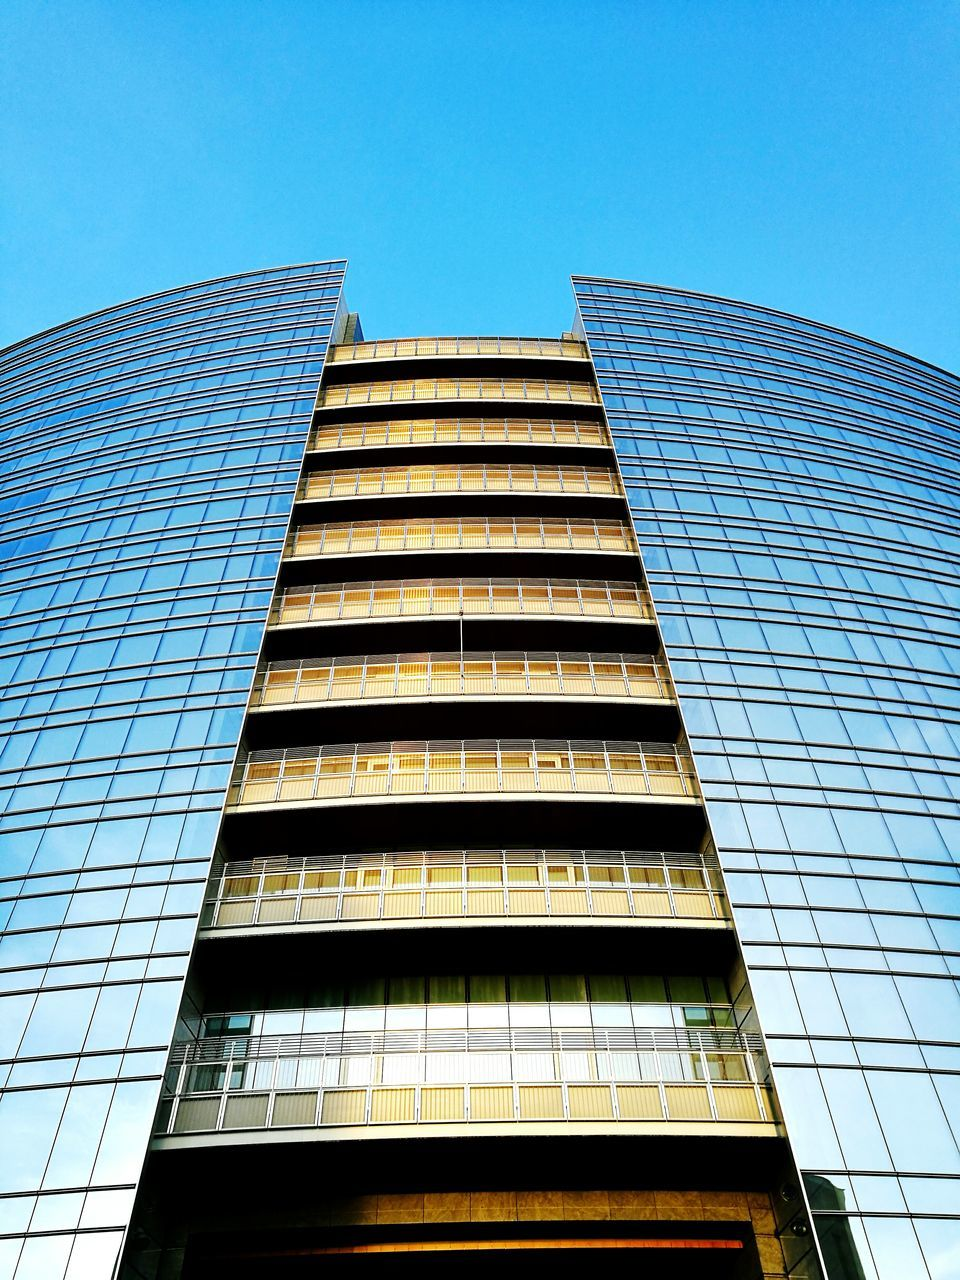 architecture, building exterior, low angle view, built structure, window, clear sky, skyscraper, modern, no people, day, blue, outdoors, sky, city